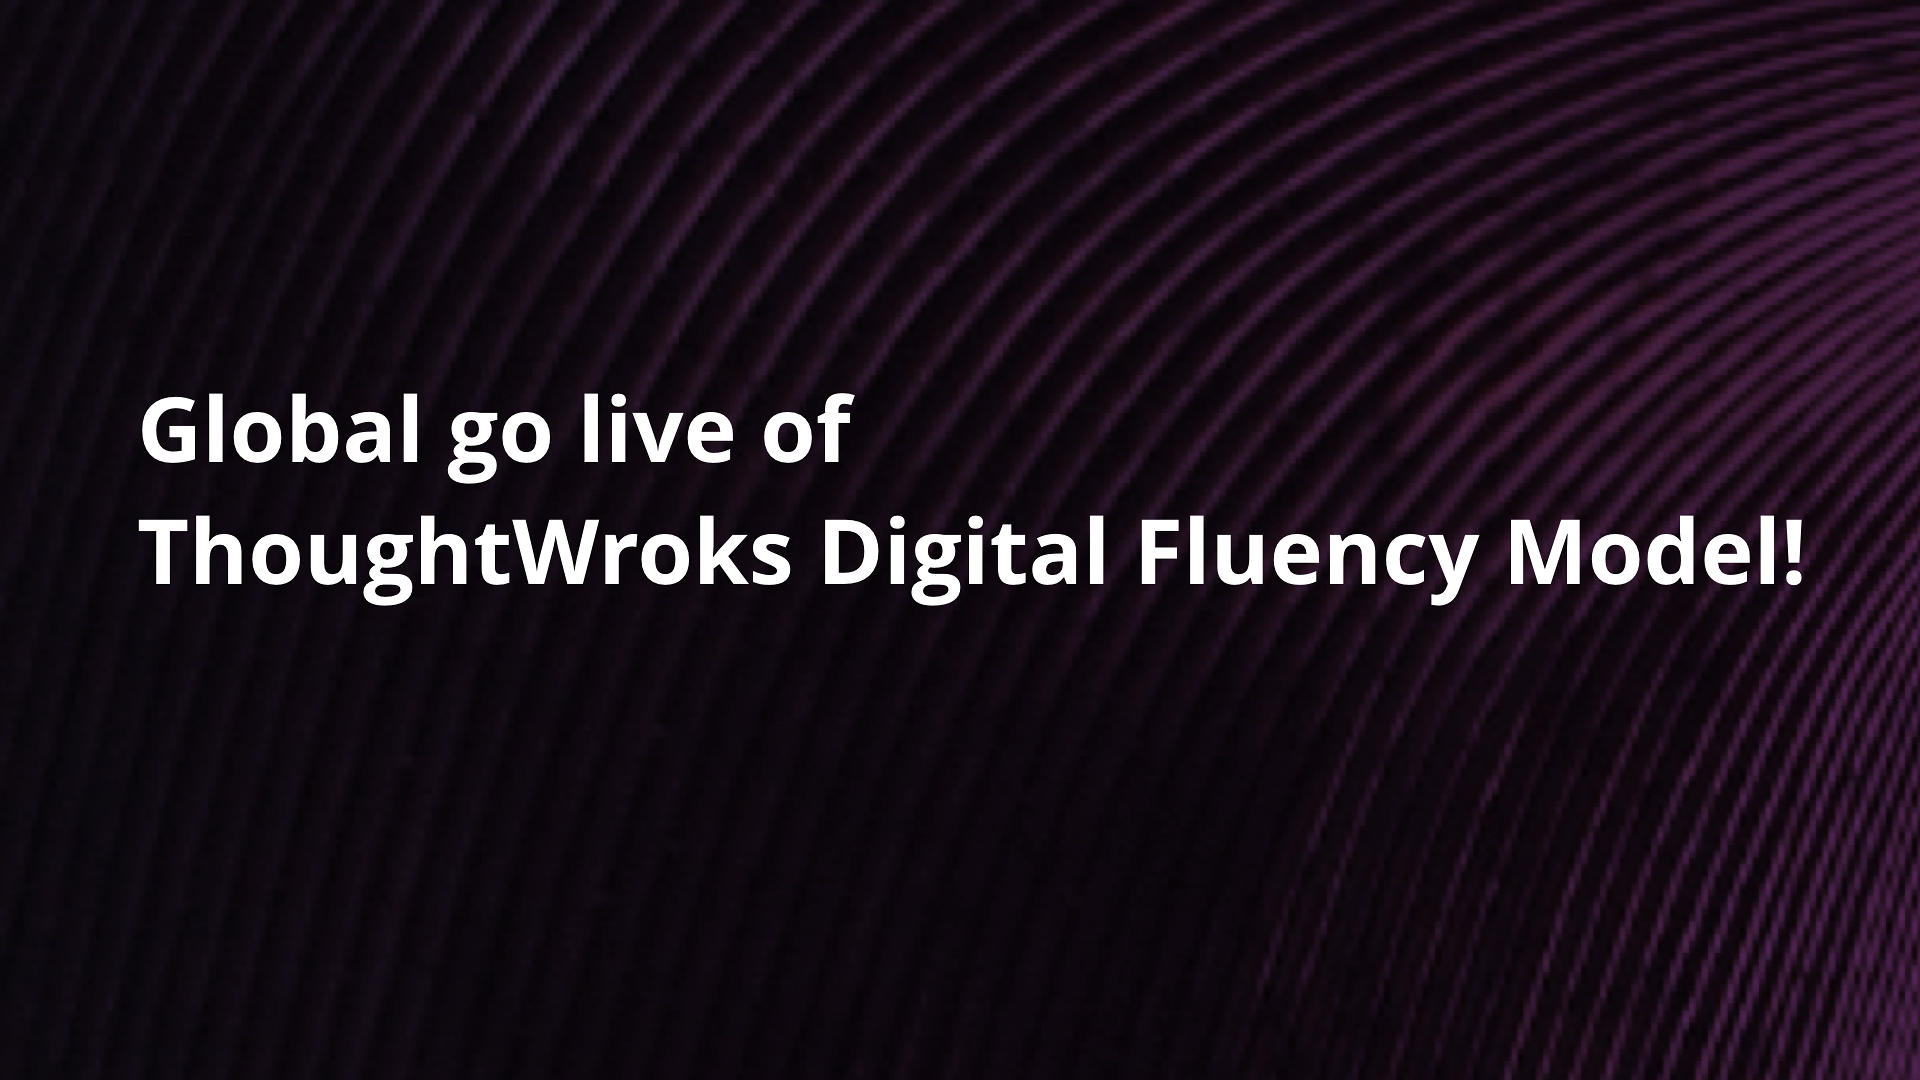 ThoughtWroks Digital Fluency Model